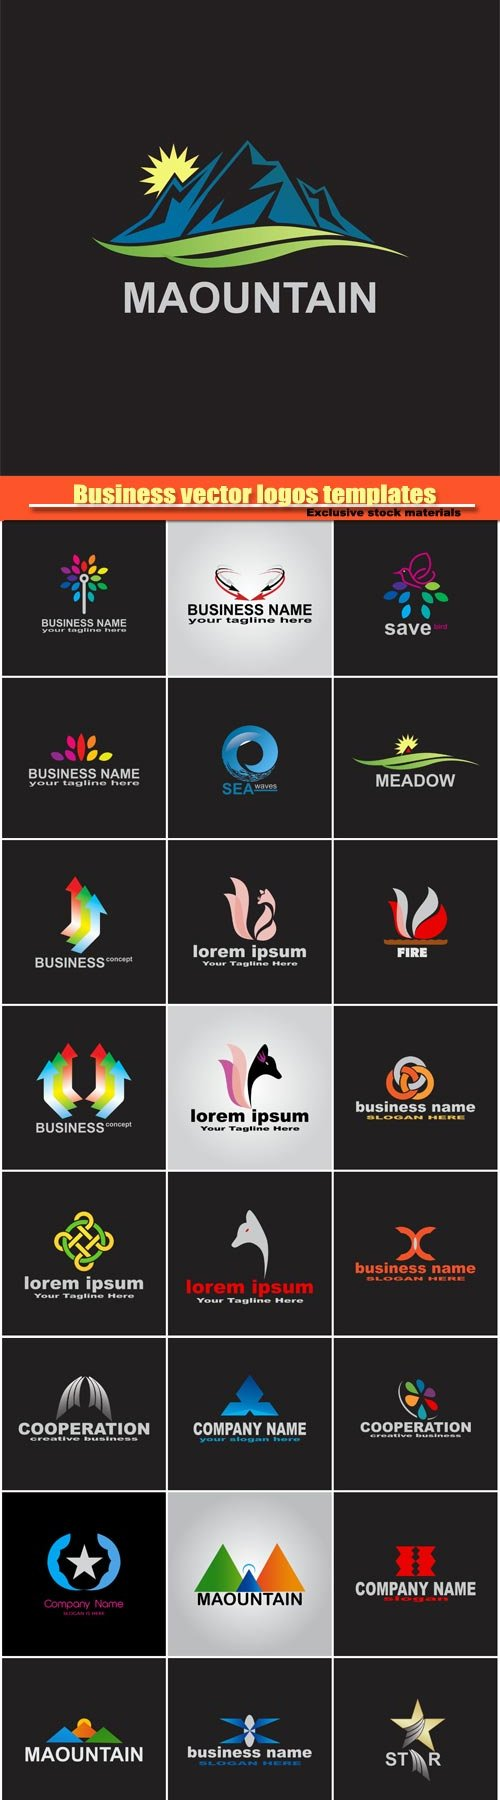 Business vector logos templates, creative figure icon